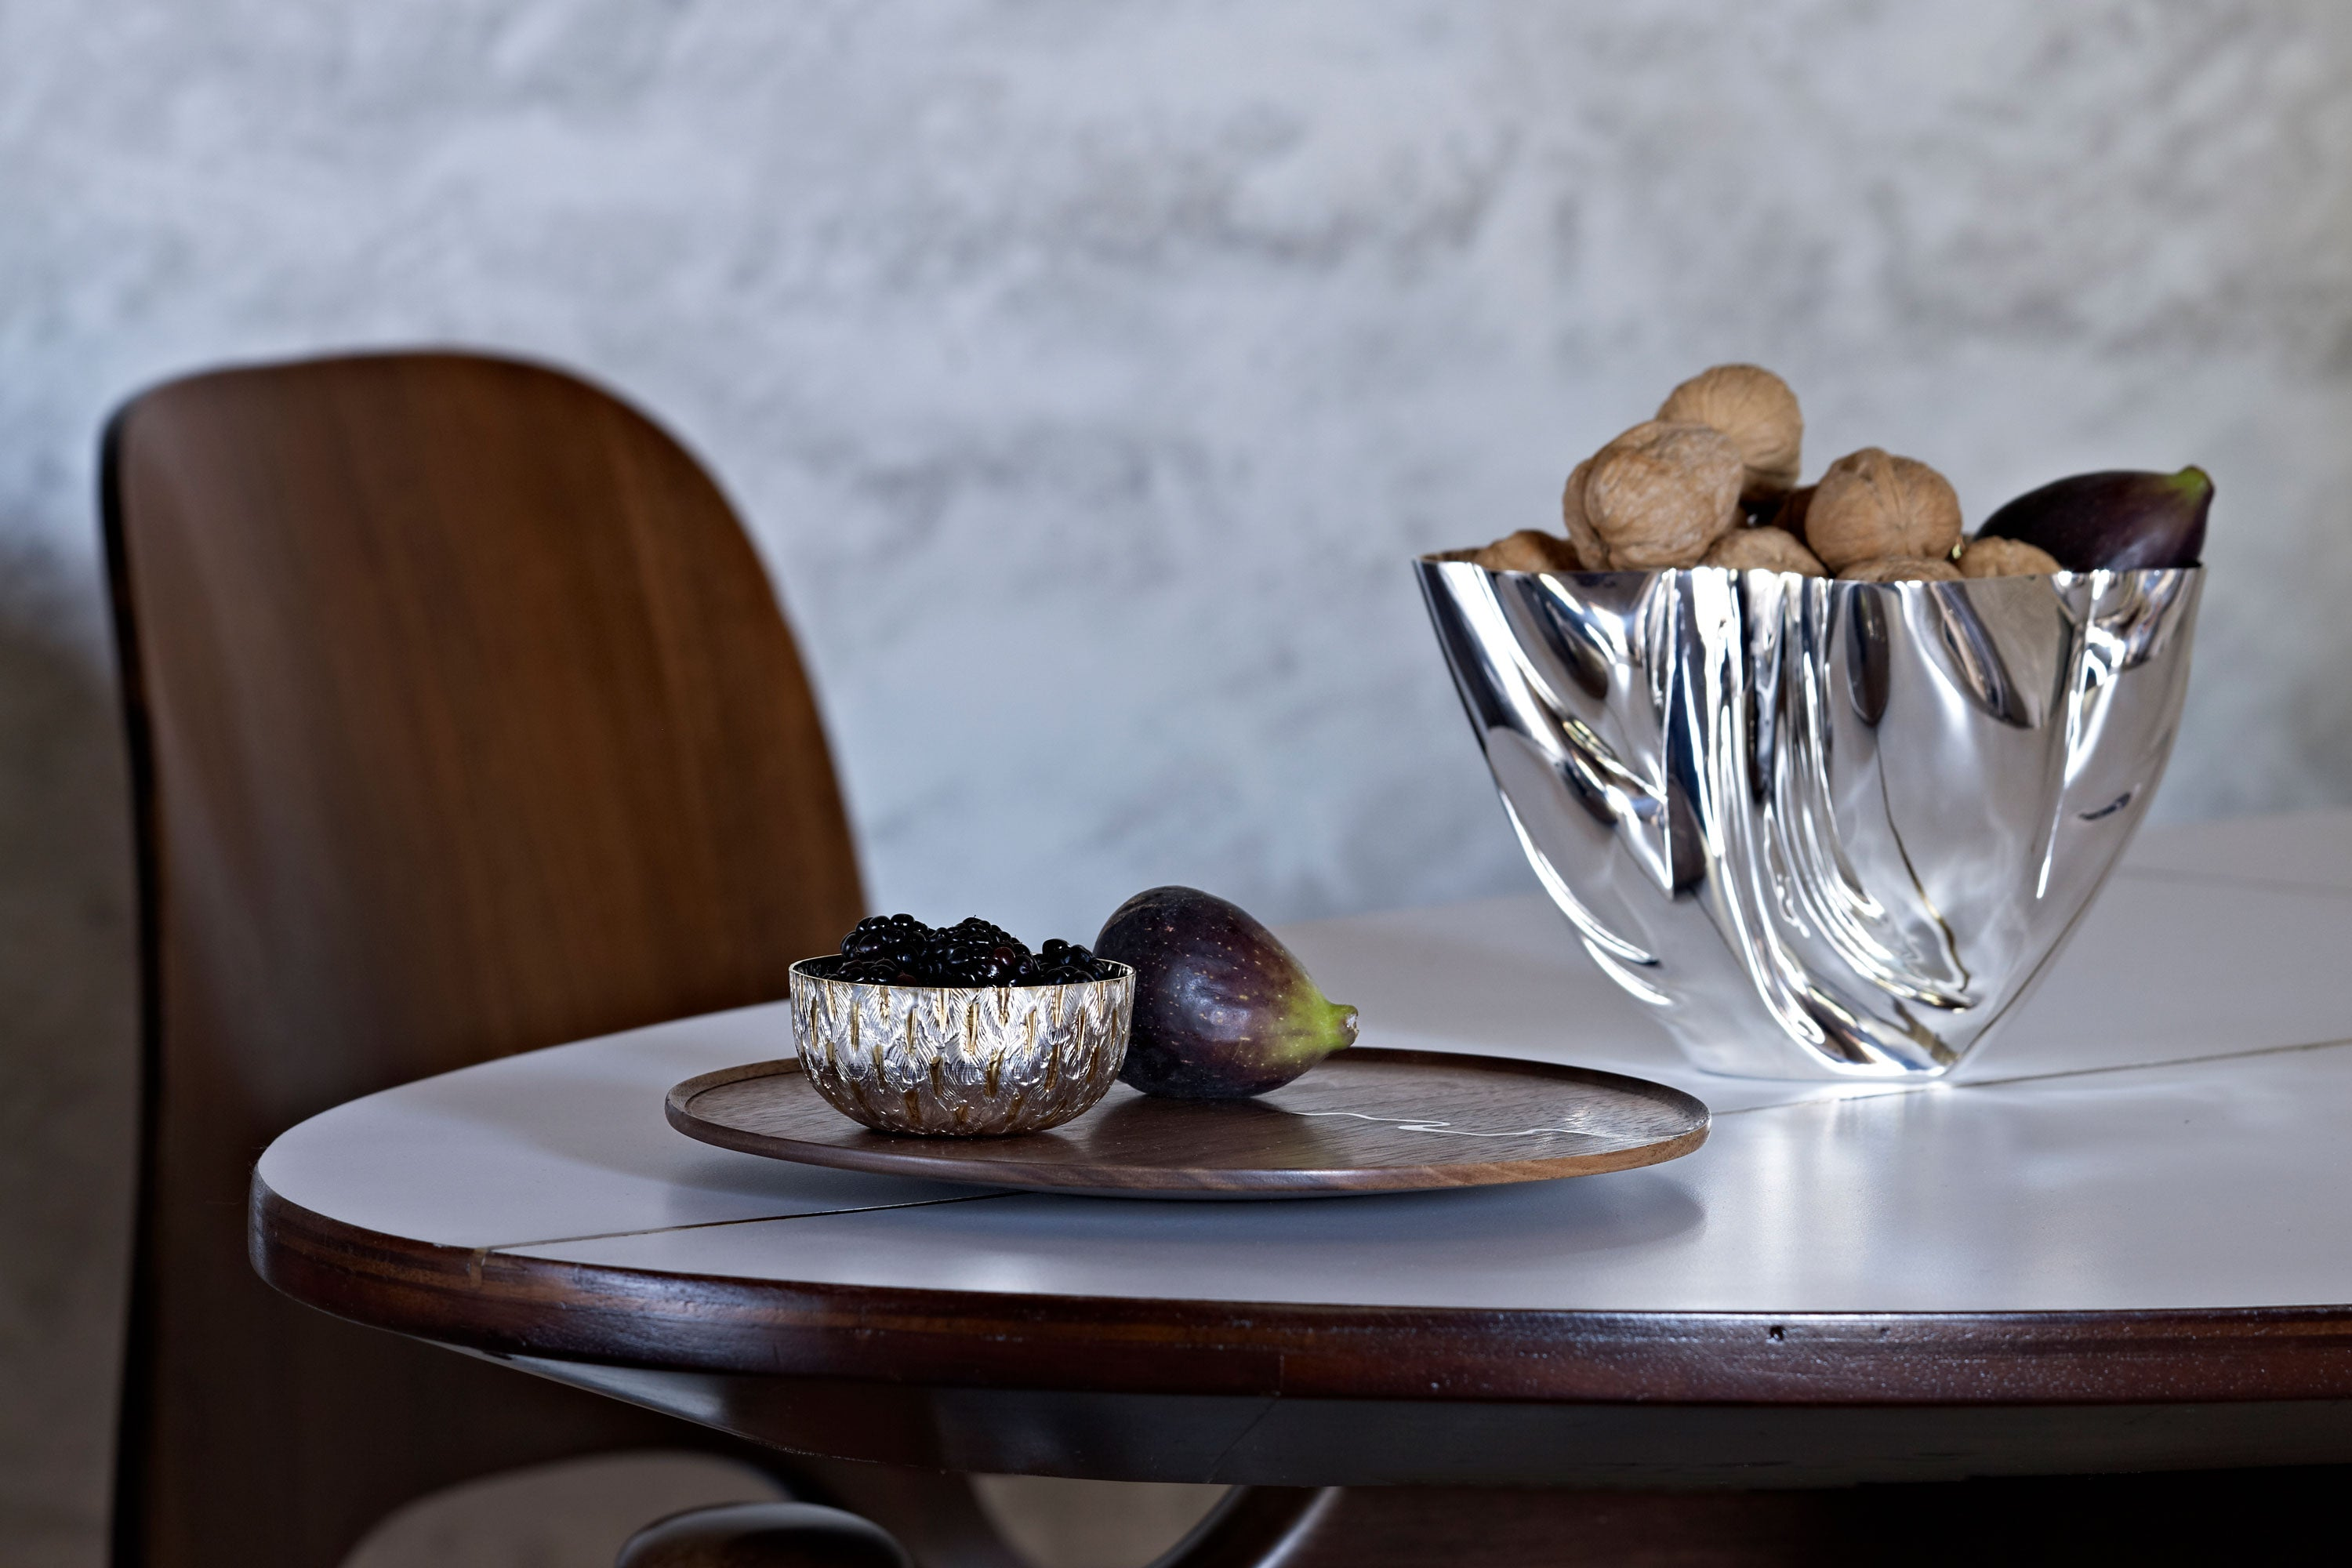 Tane Bespoke Silverware Collection designed by Bodo Sperlein